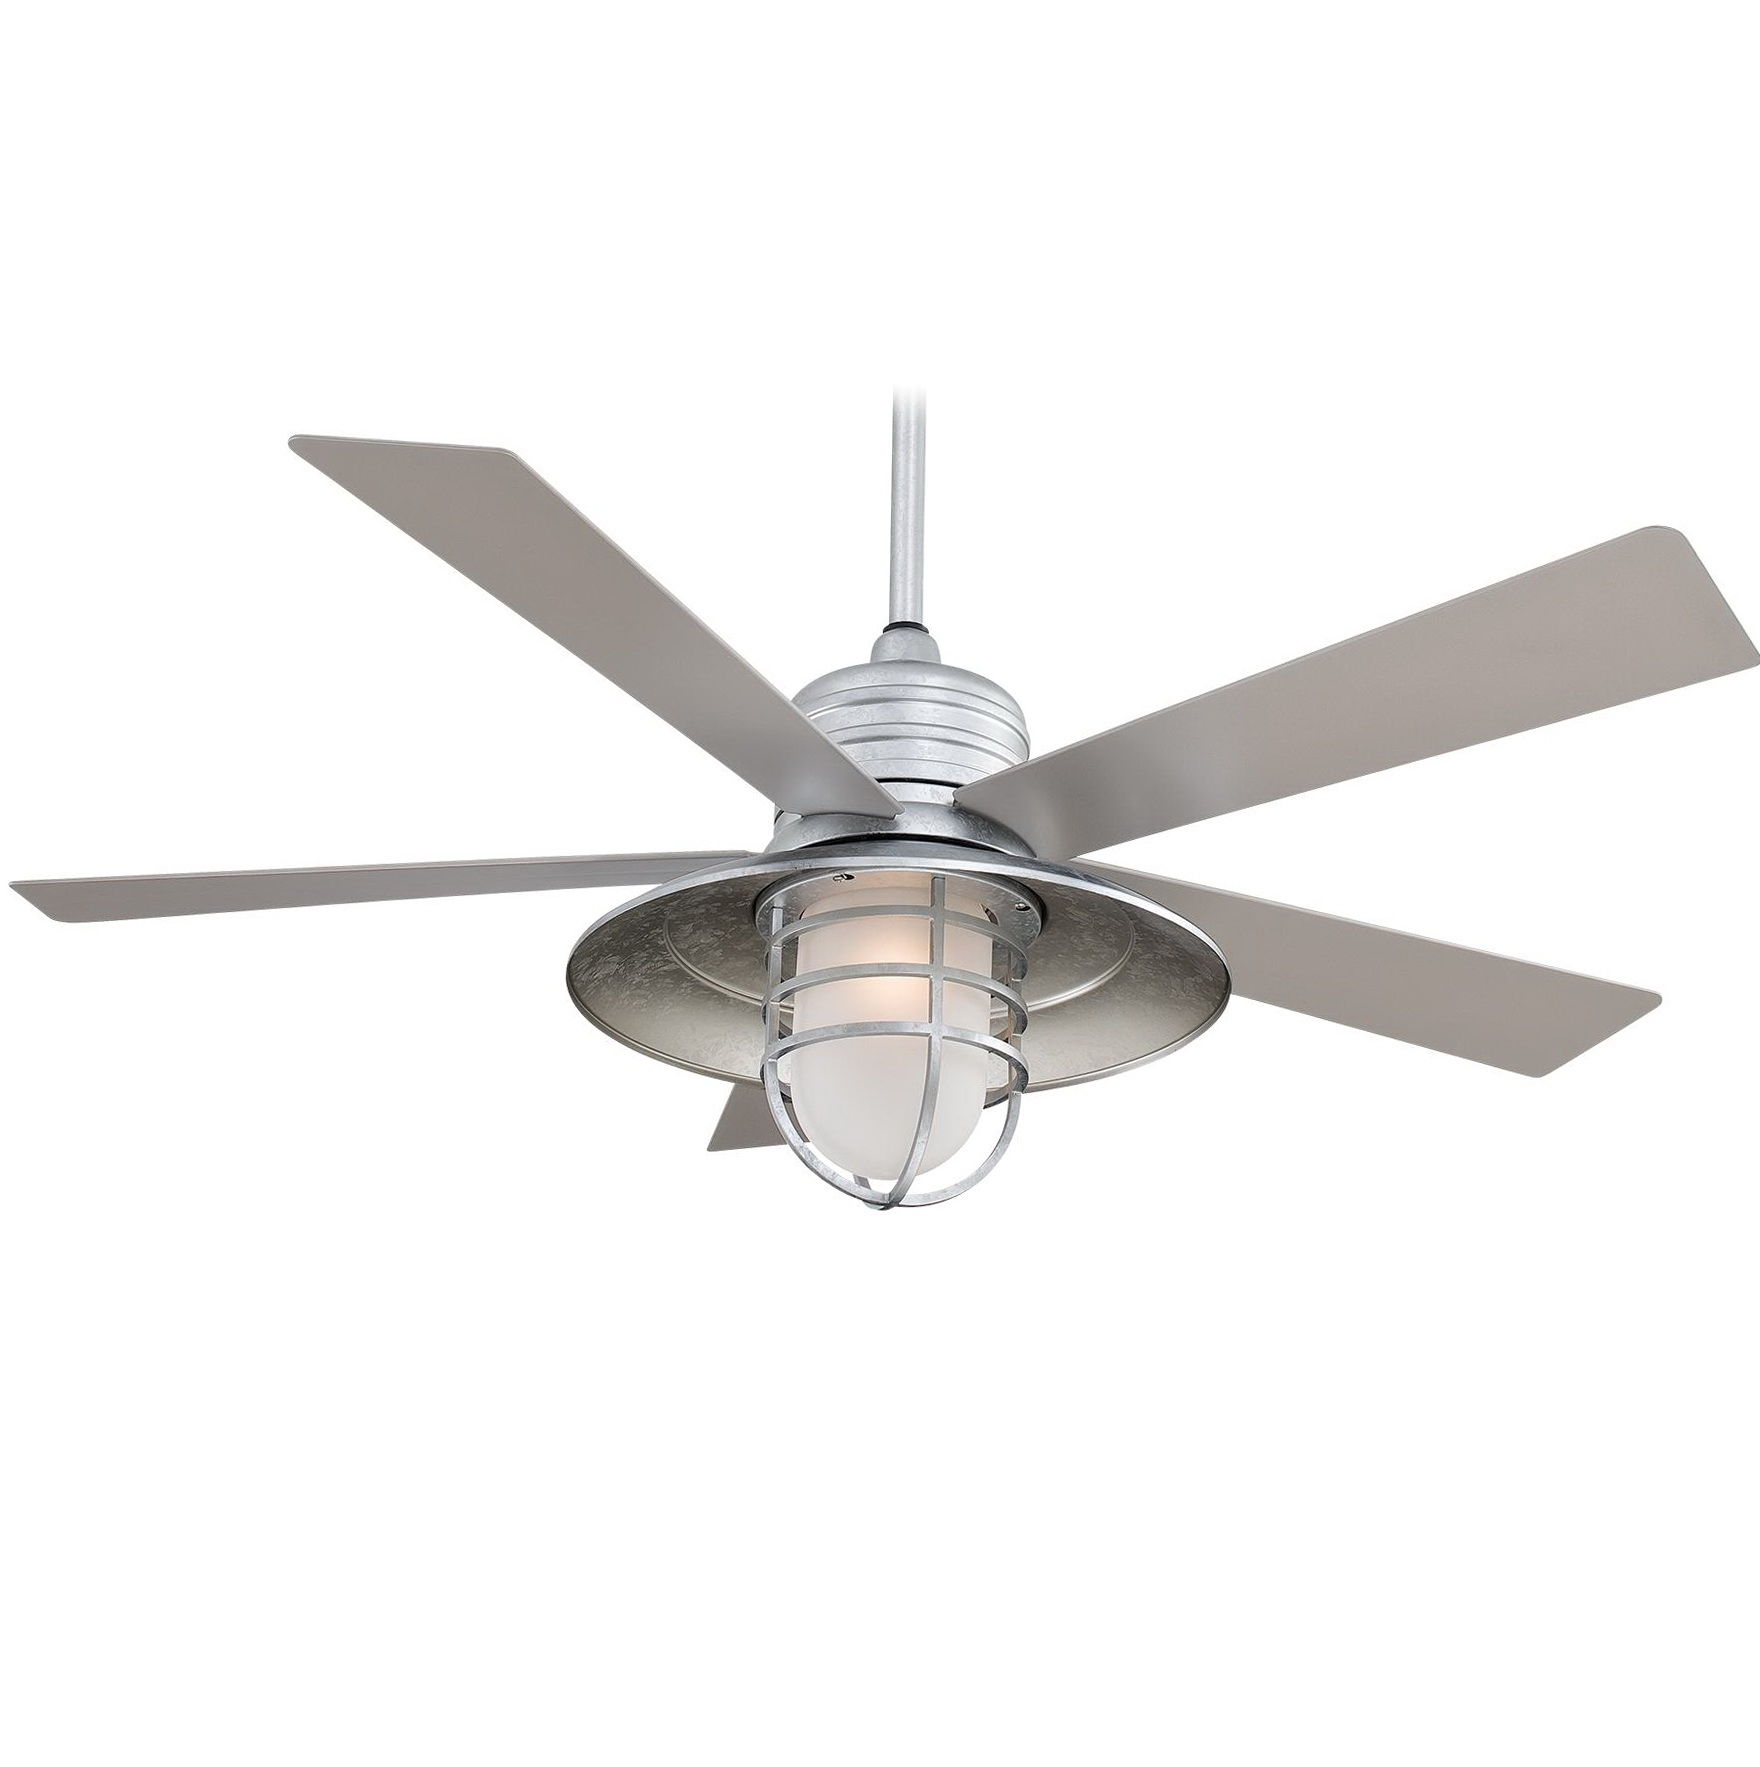 Most Popular Modern Outdoor Ceiling Fans – Pixball Throughout Modern Outdoor Ceiling Fans With Lights (View 5 of 20)